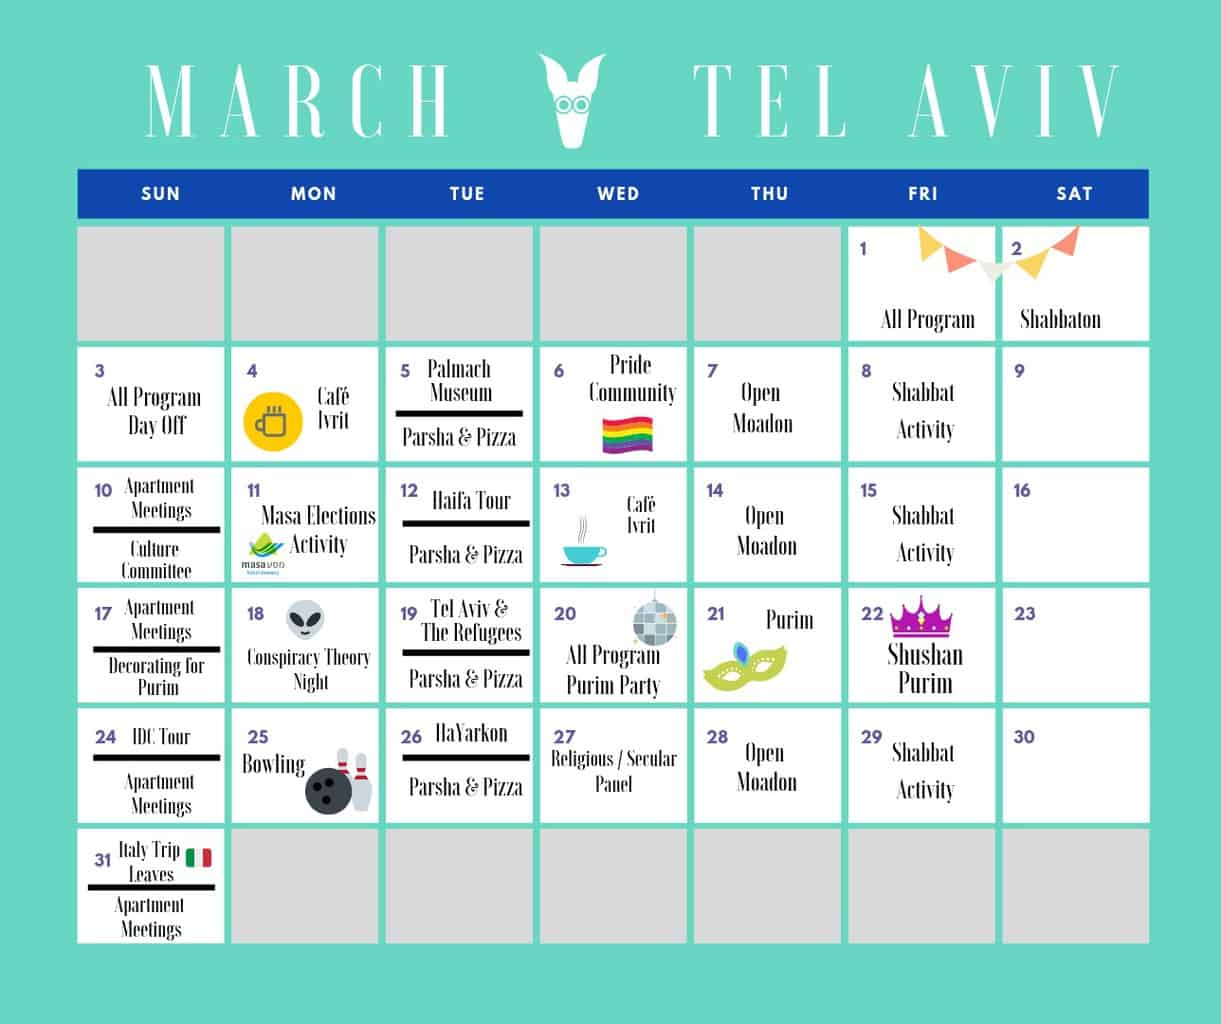 Weekly Updates – Tel Aviv March 7, 2019